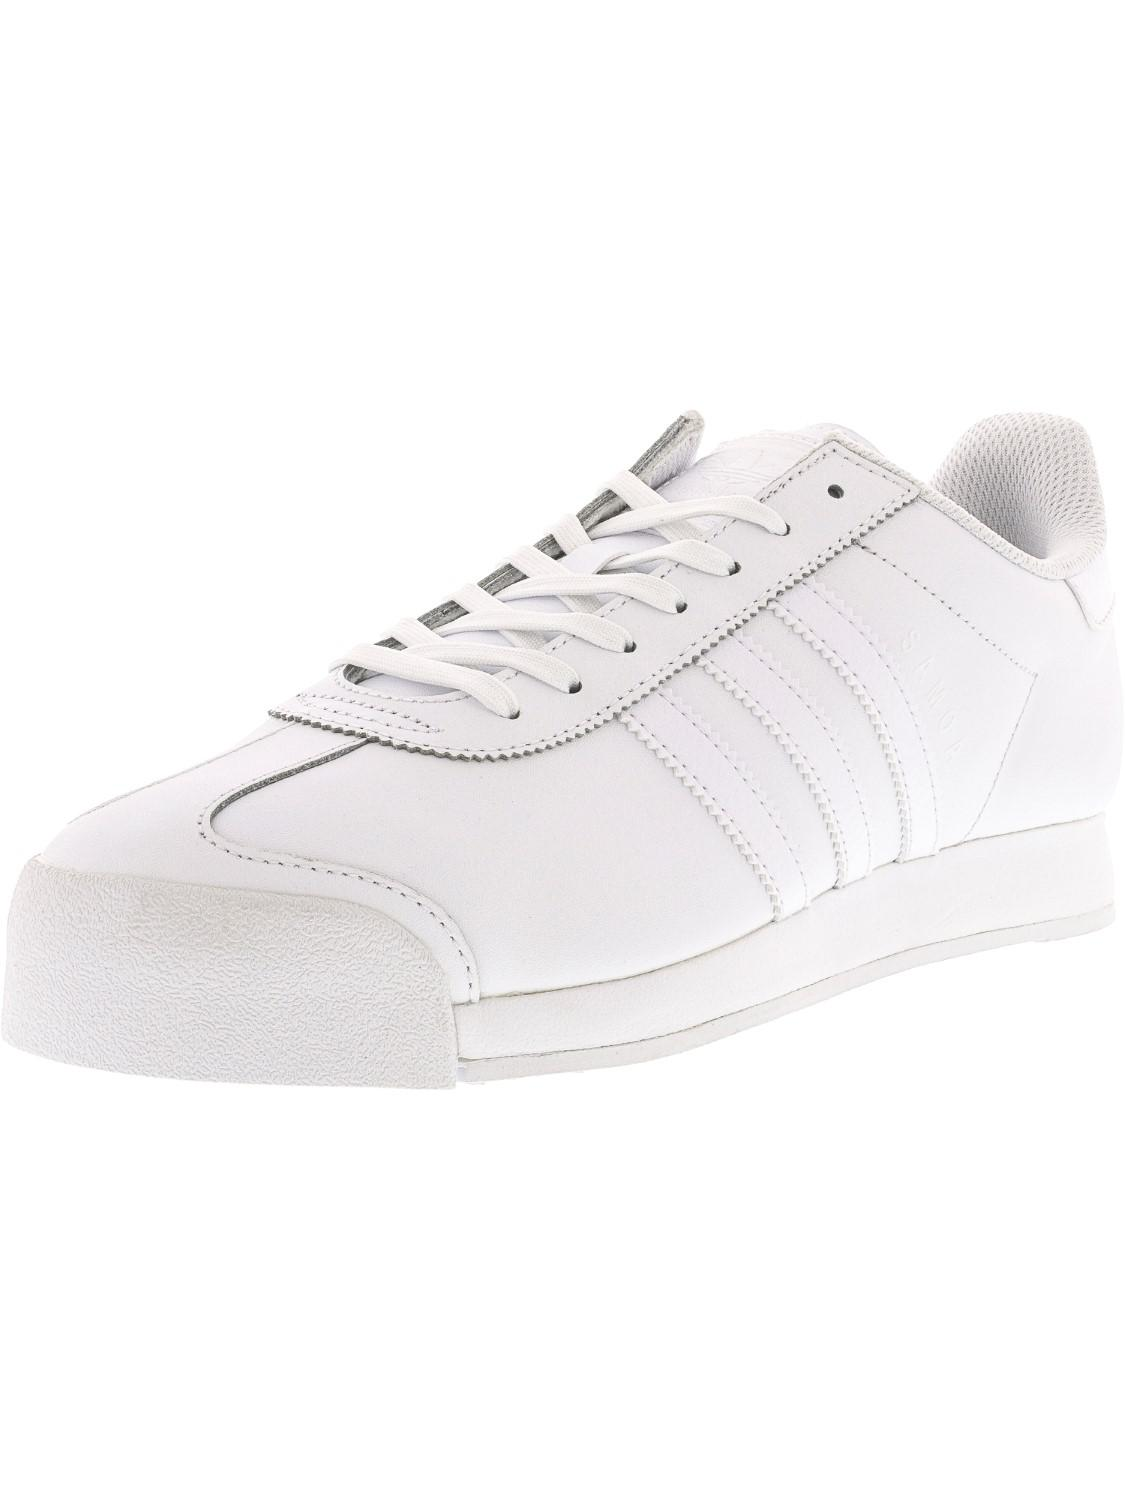 buy popular ccfe1 8123e Lyst - adidas Men s Samoa Ankle-high Leather Fashion Sneaker in ...